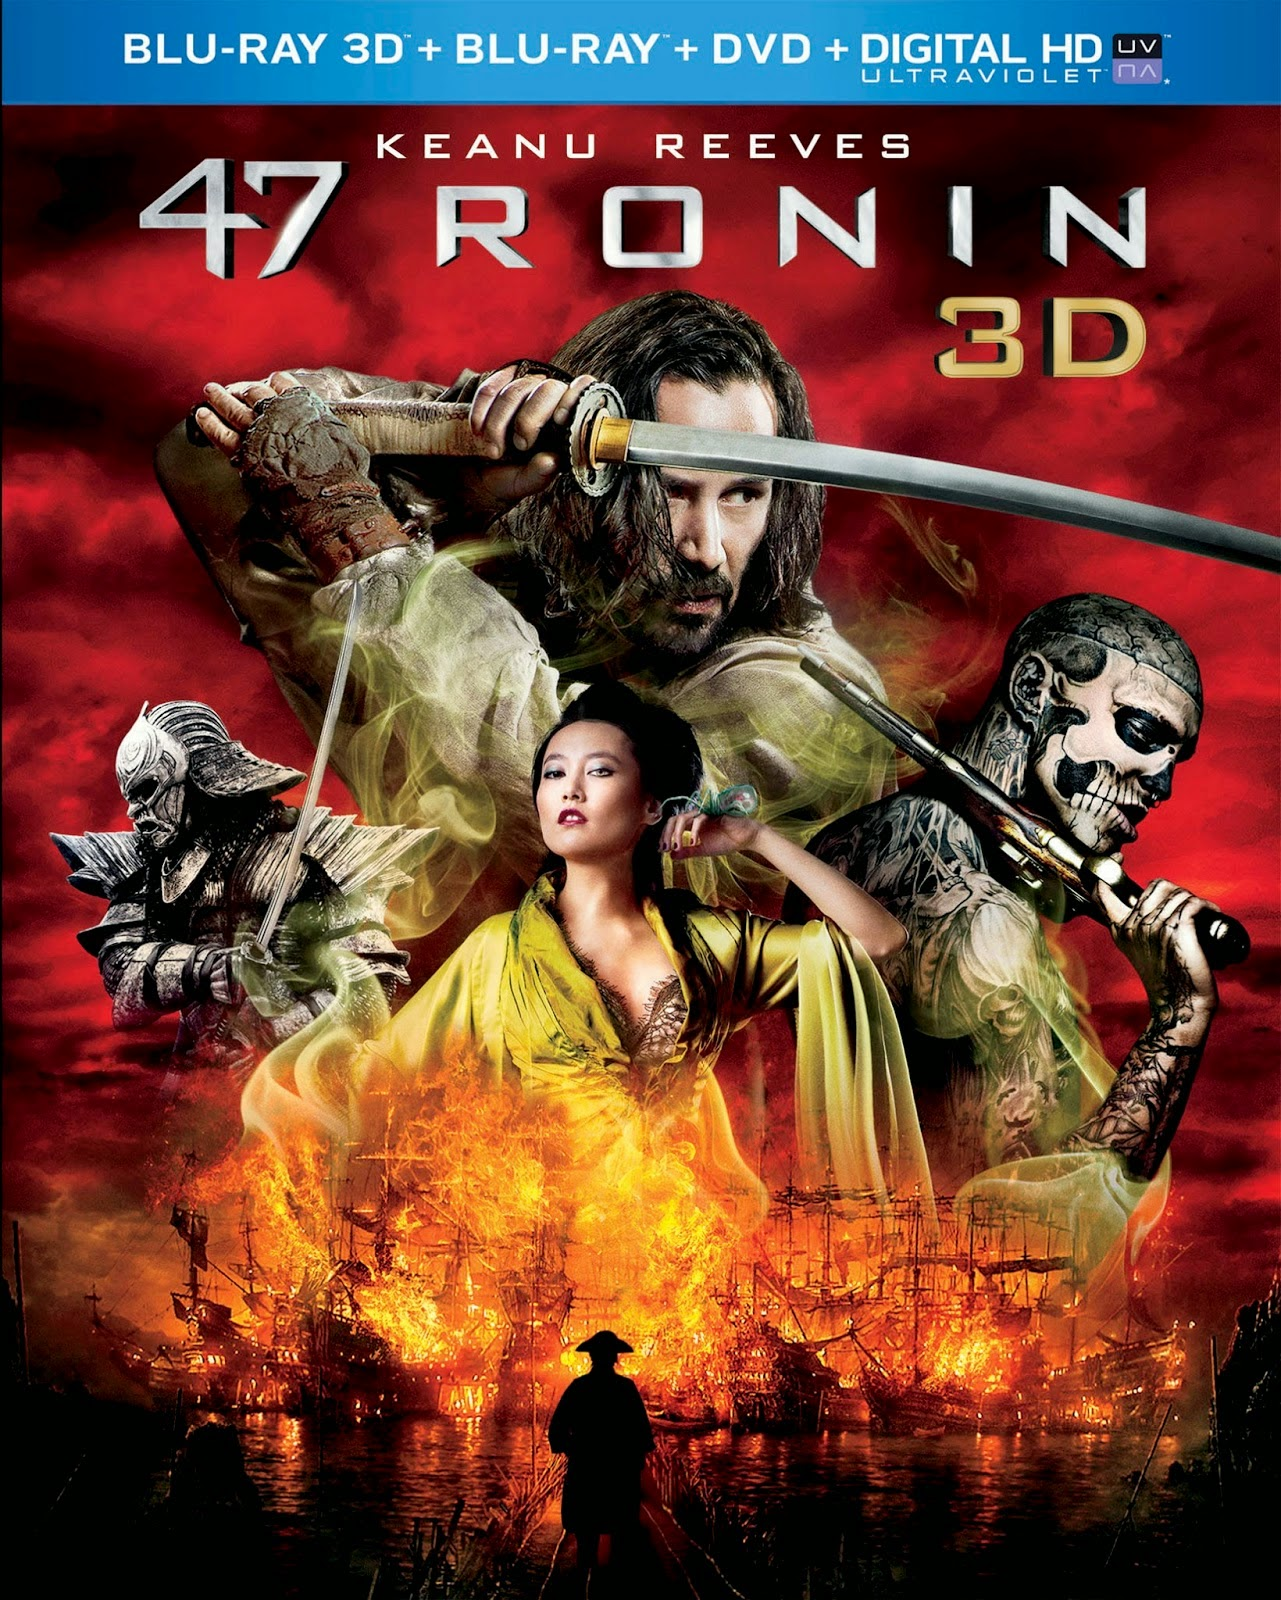 Click image & enter to WIN a 47 Ronin iTunes Digital HD Code